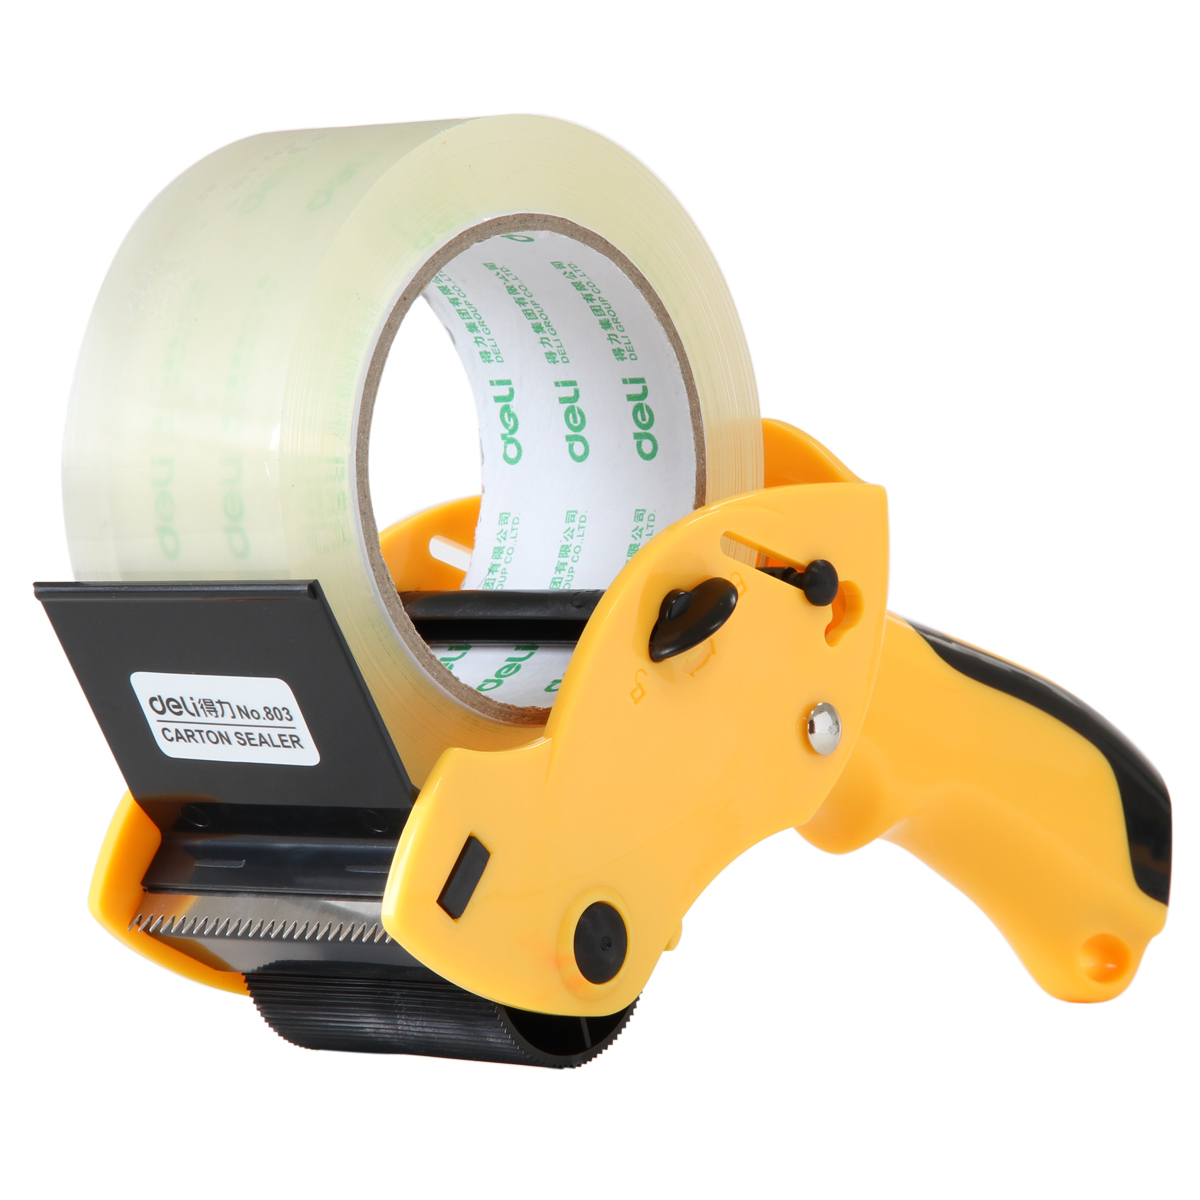 Packing Tape Dispenser For Scotch Tape Seat Dispensador Strap Adhesiva Packing Dispensers Office Tapes Holder